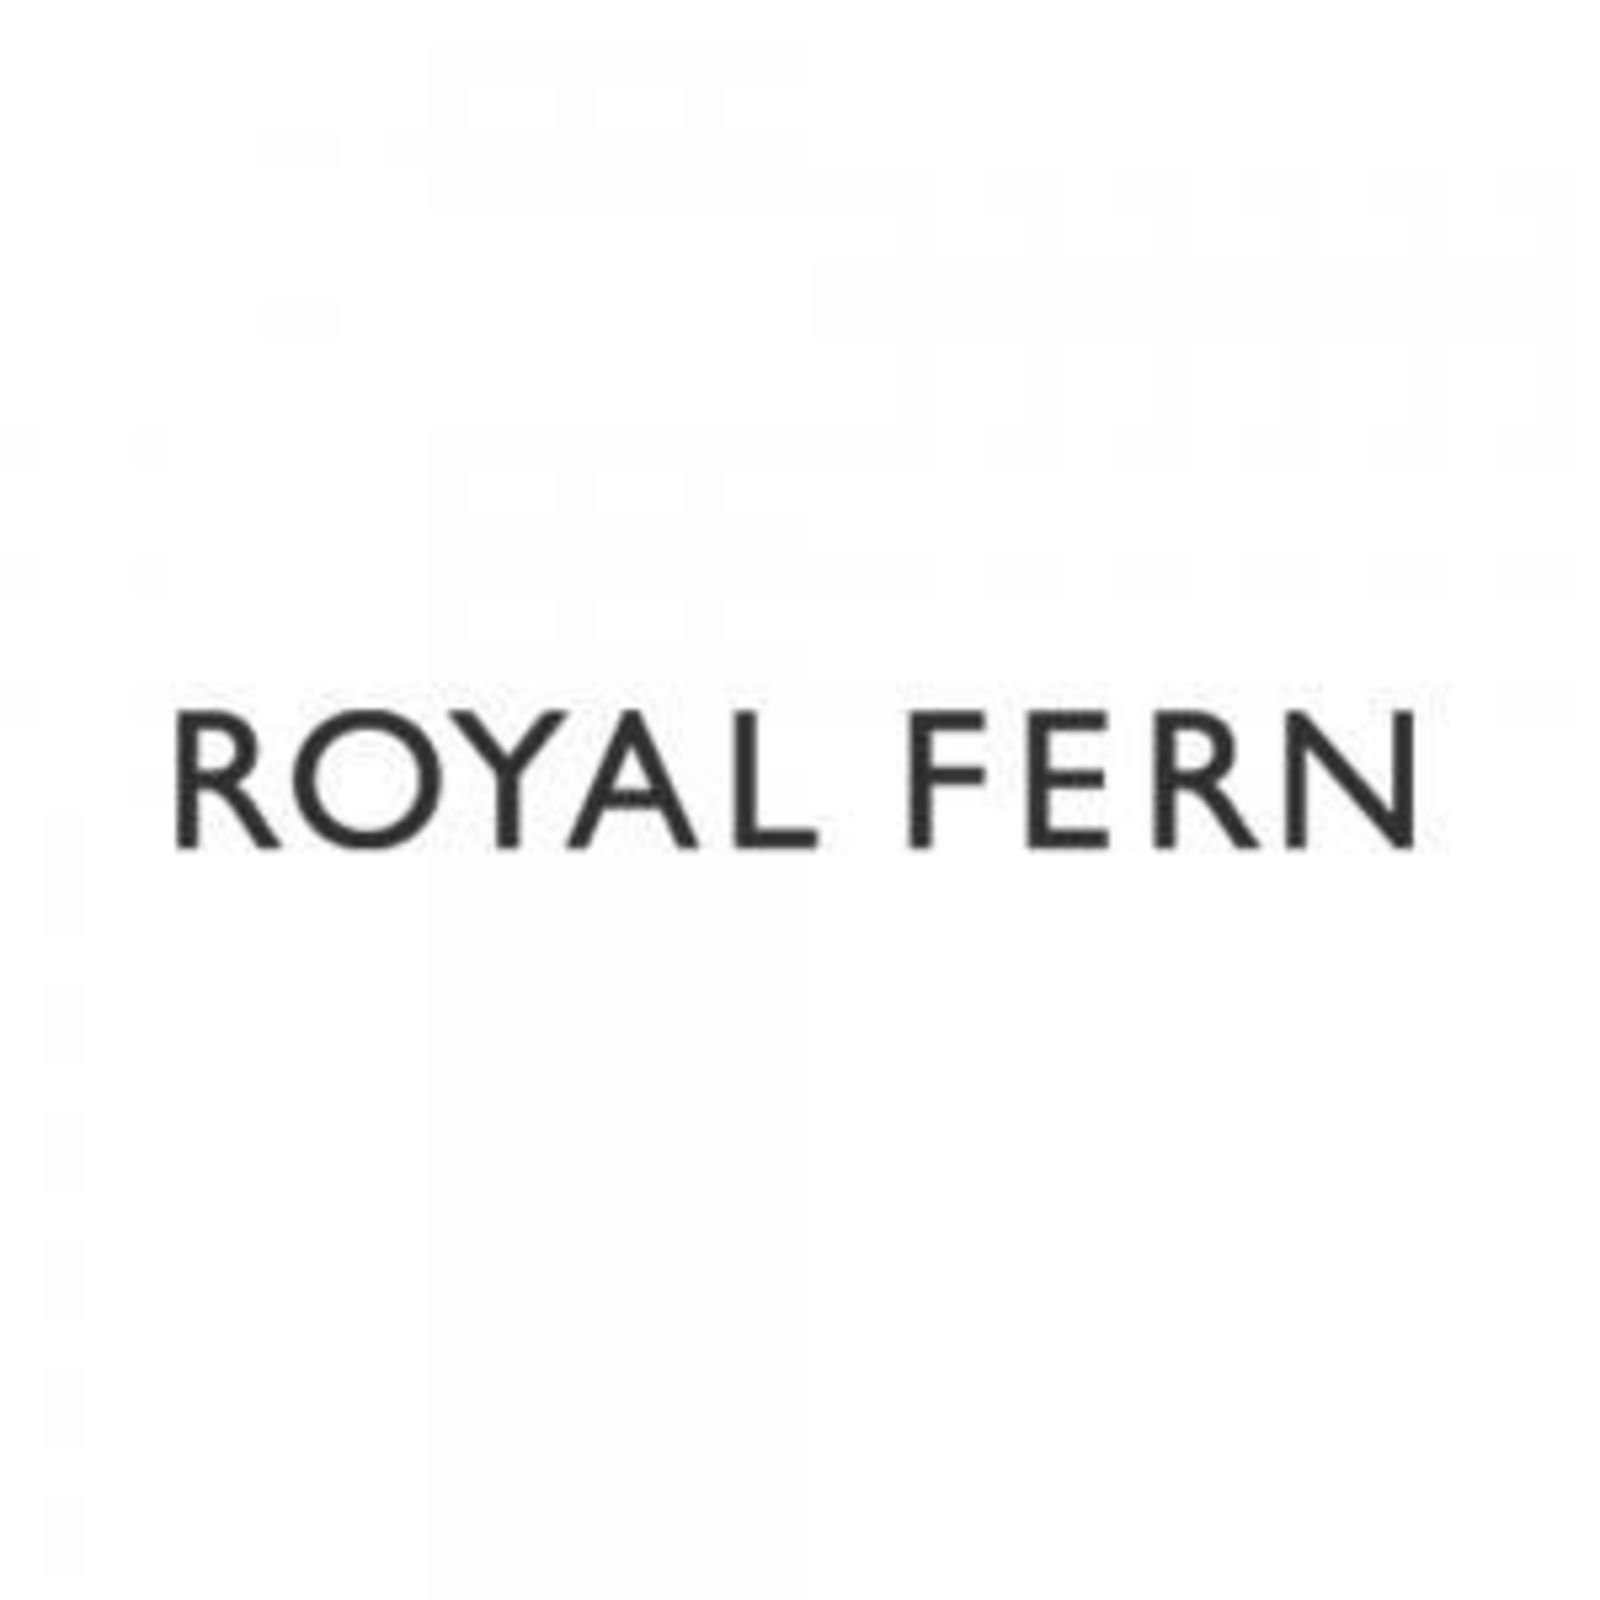 Royal Fern (Image 1)